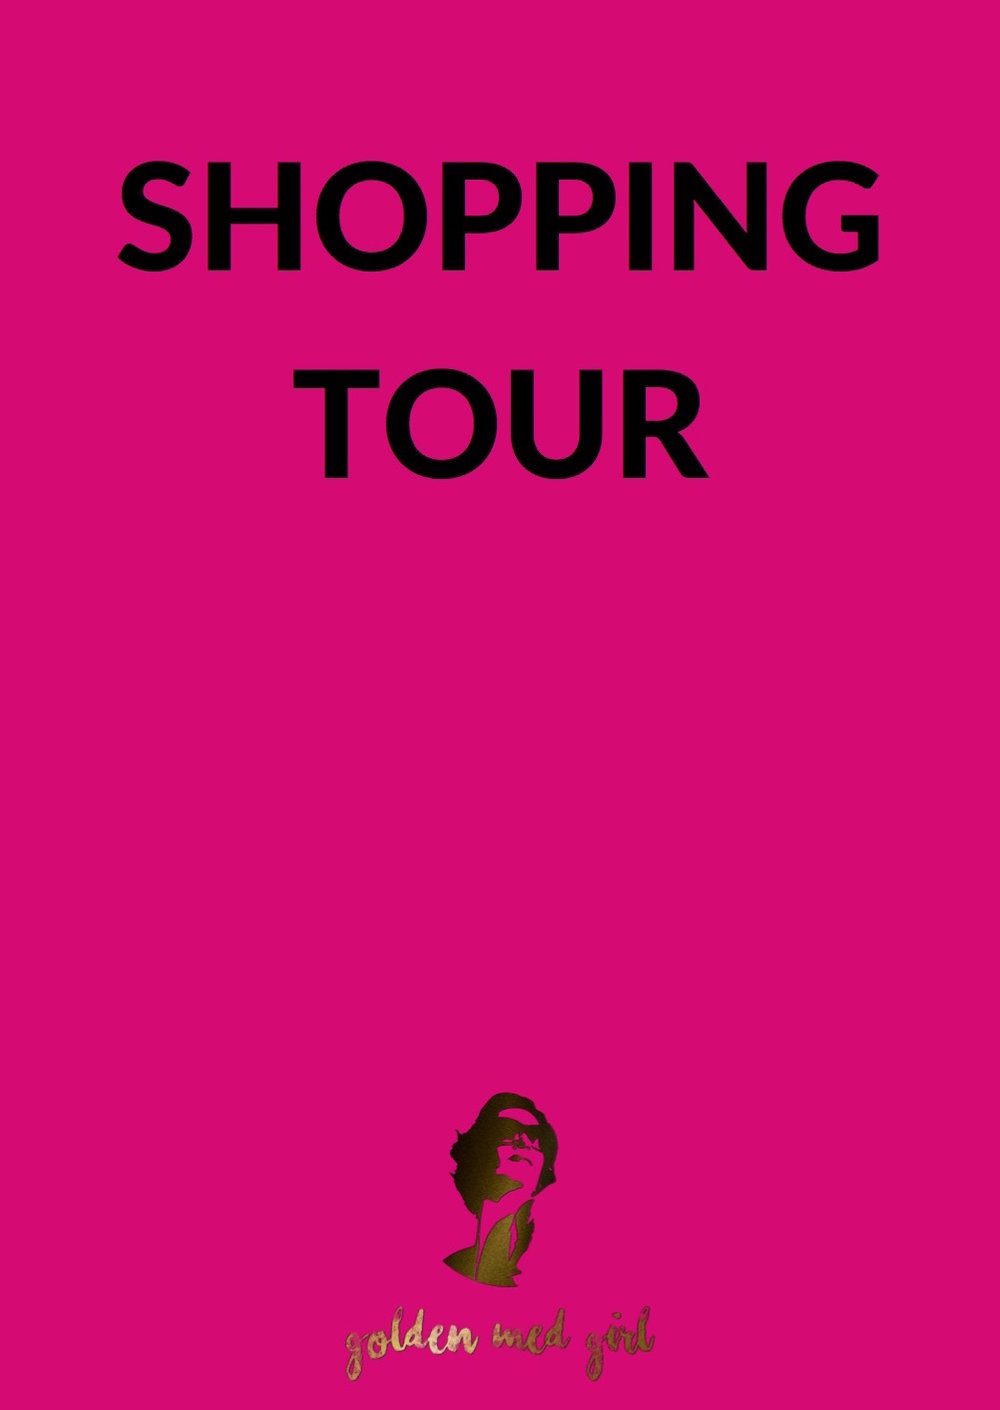 SHOPPING TOUR-1.jpg